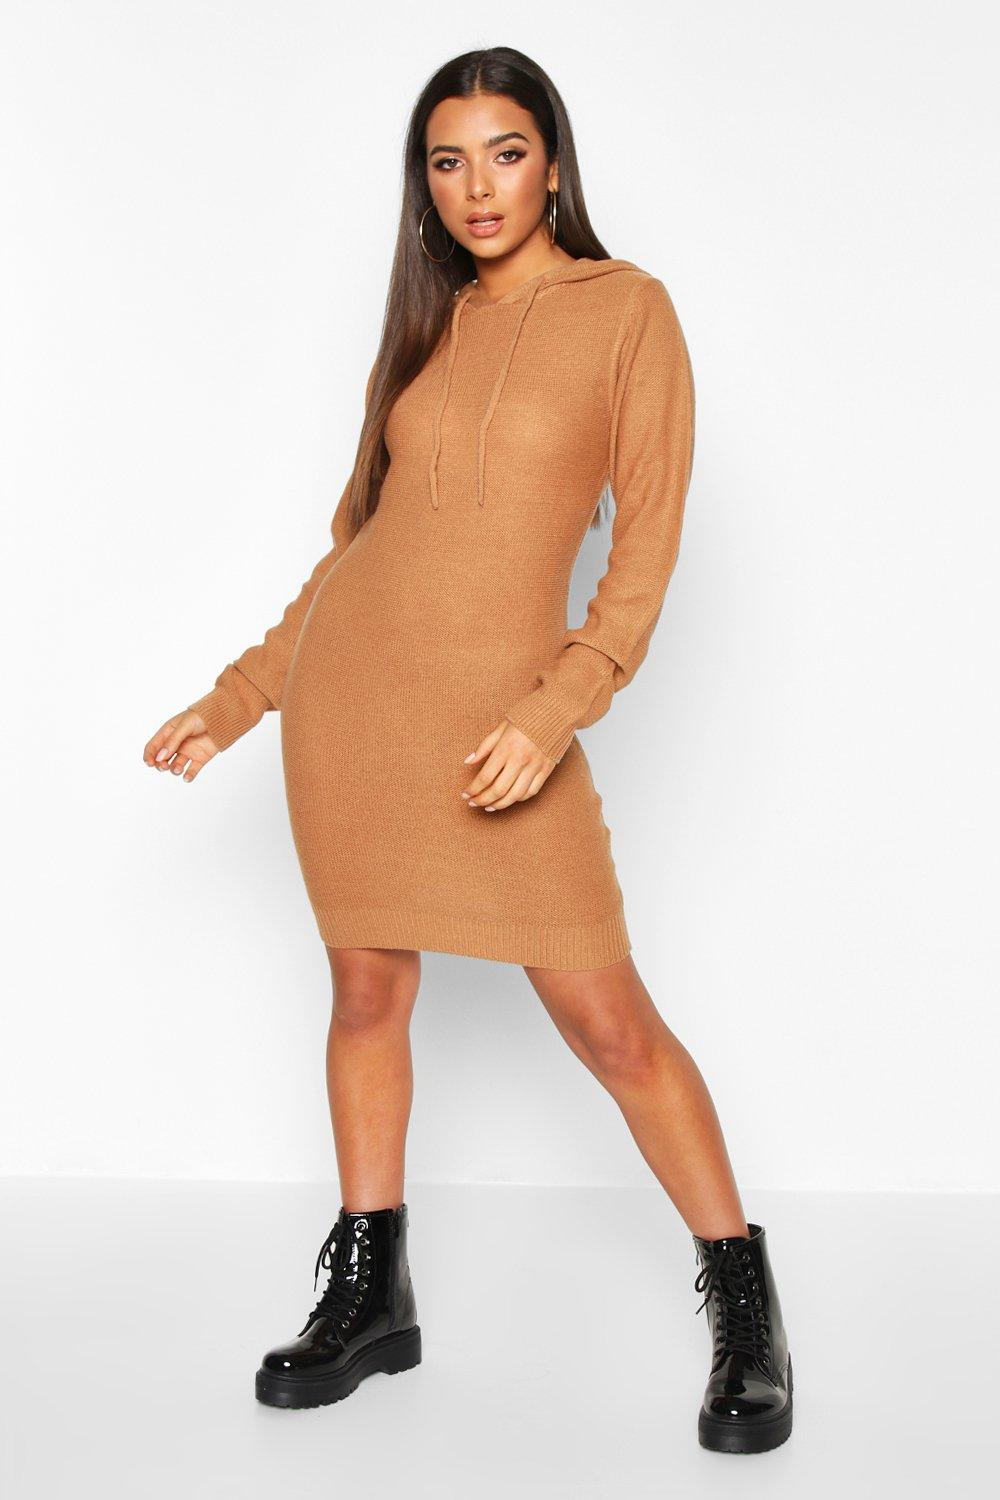 Womens Long Sleeve Knitted Dress With Hood - camel - S, Camel - Boohoo.com